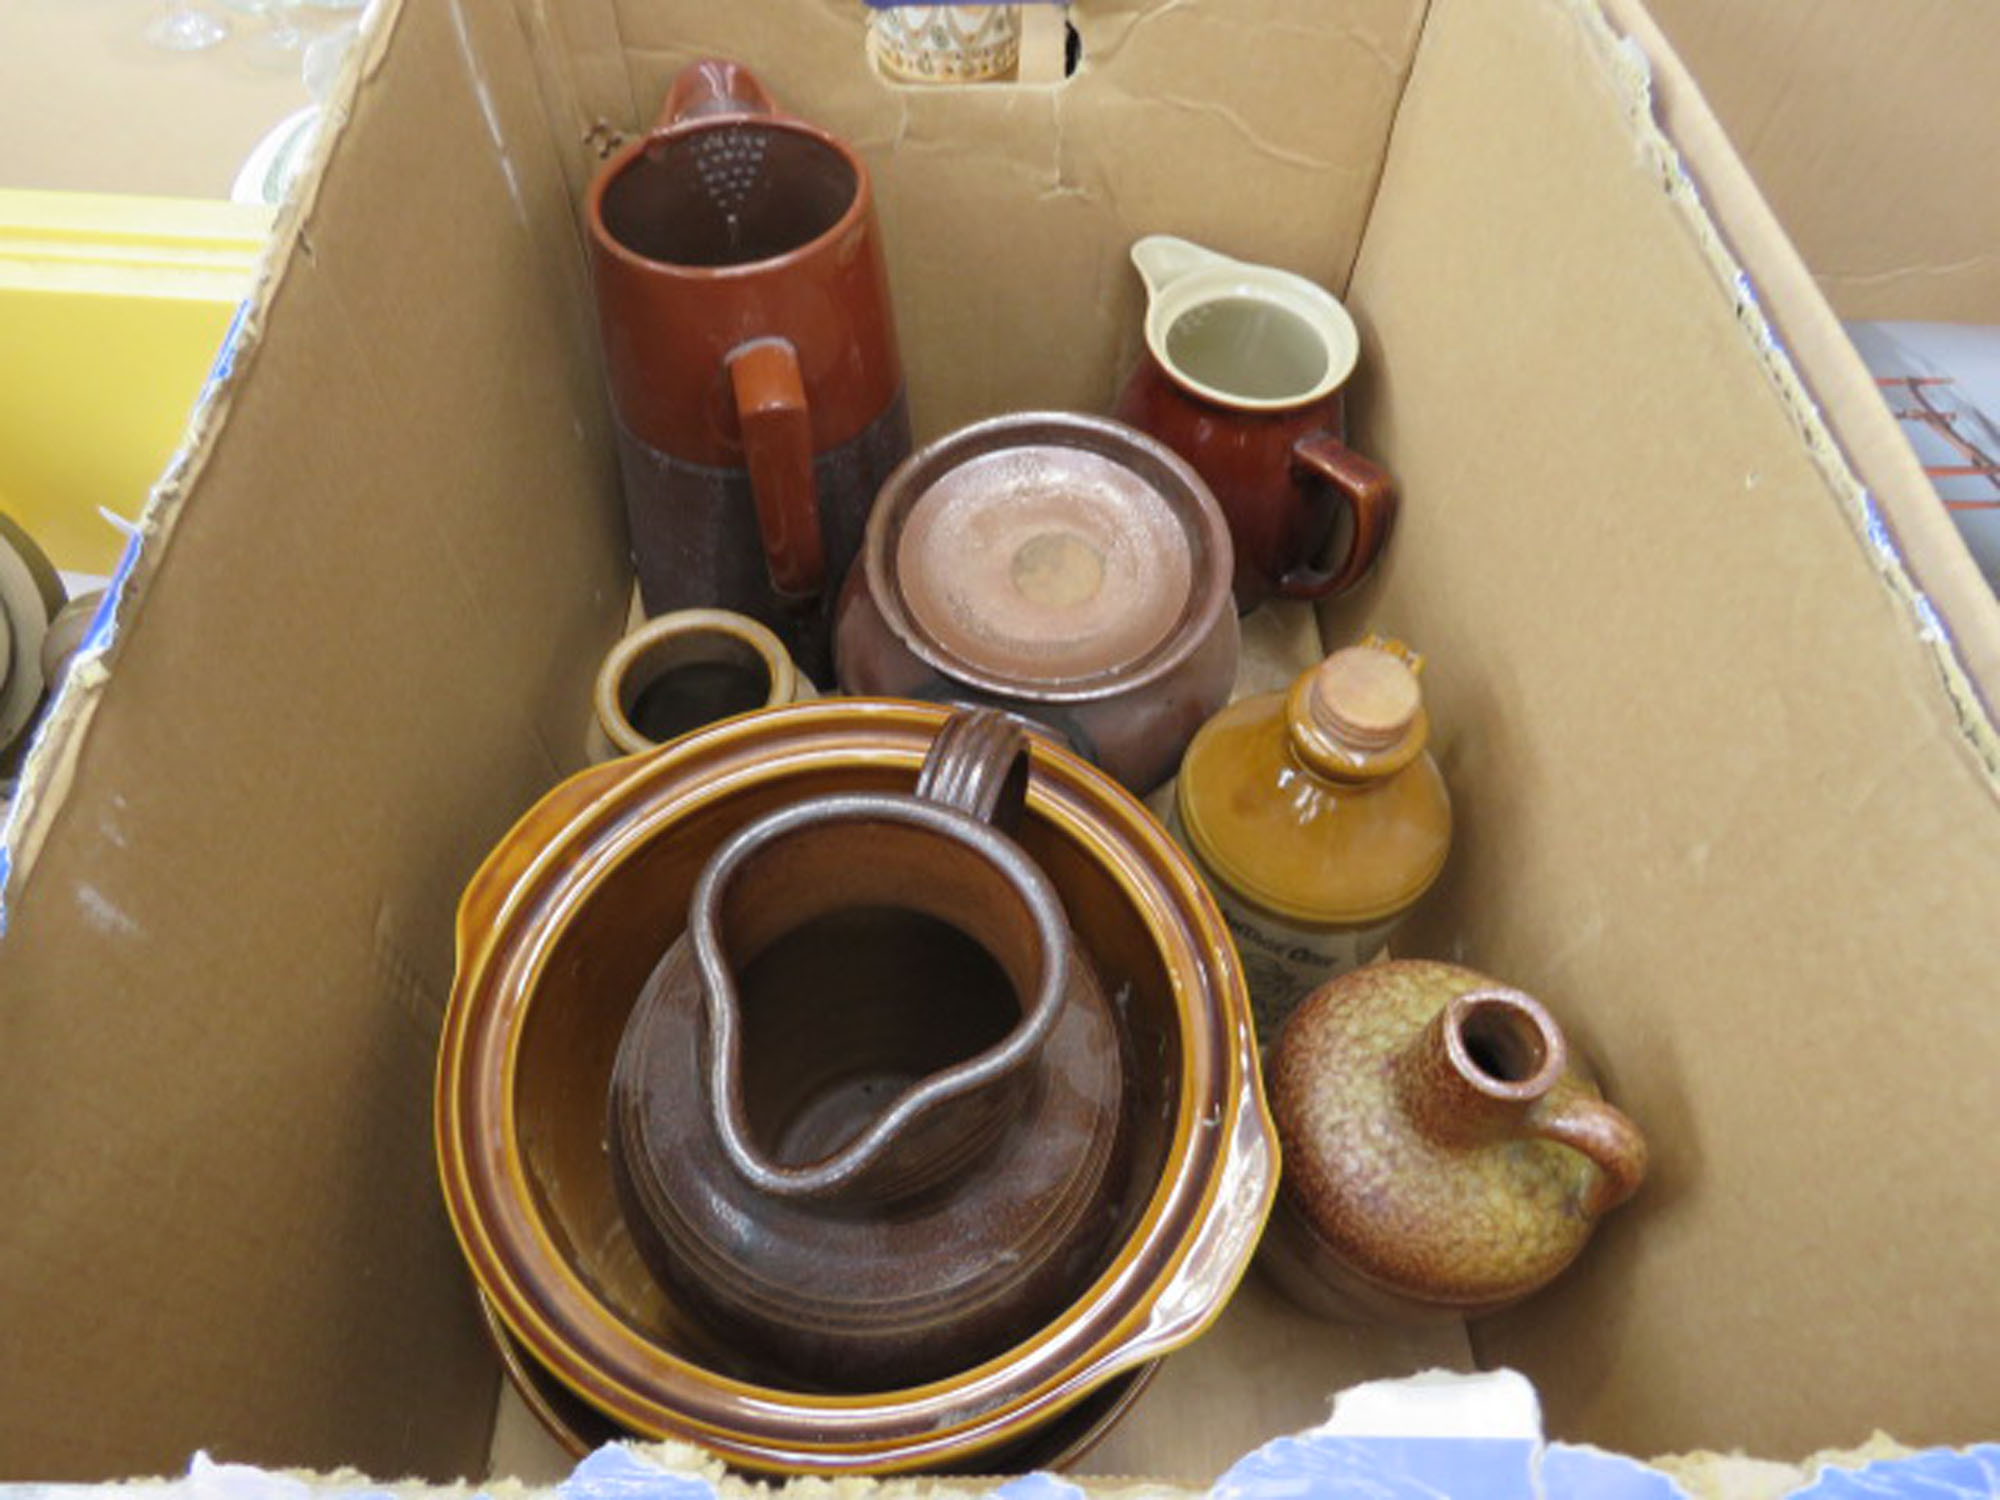 Box containing pottery jugs and storage vessels